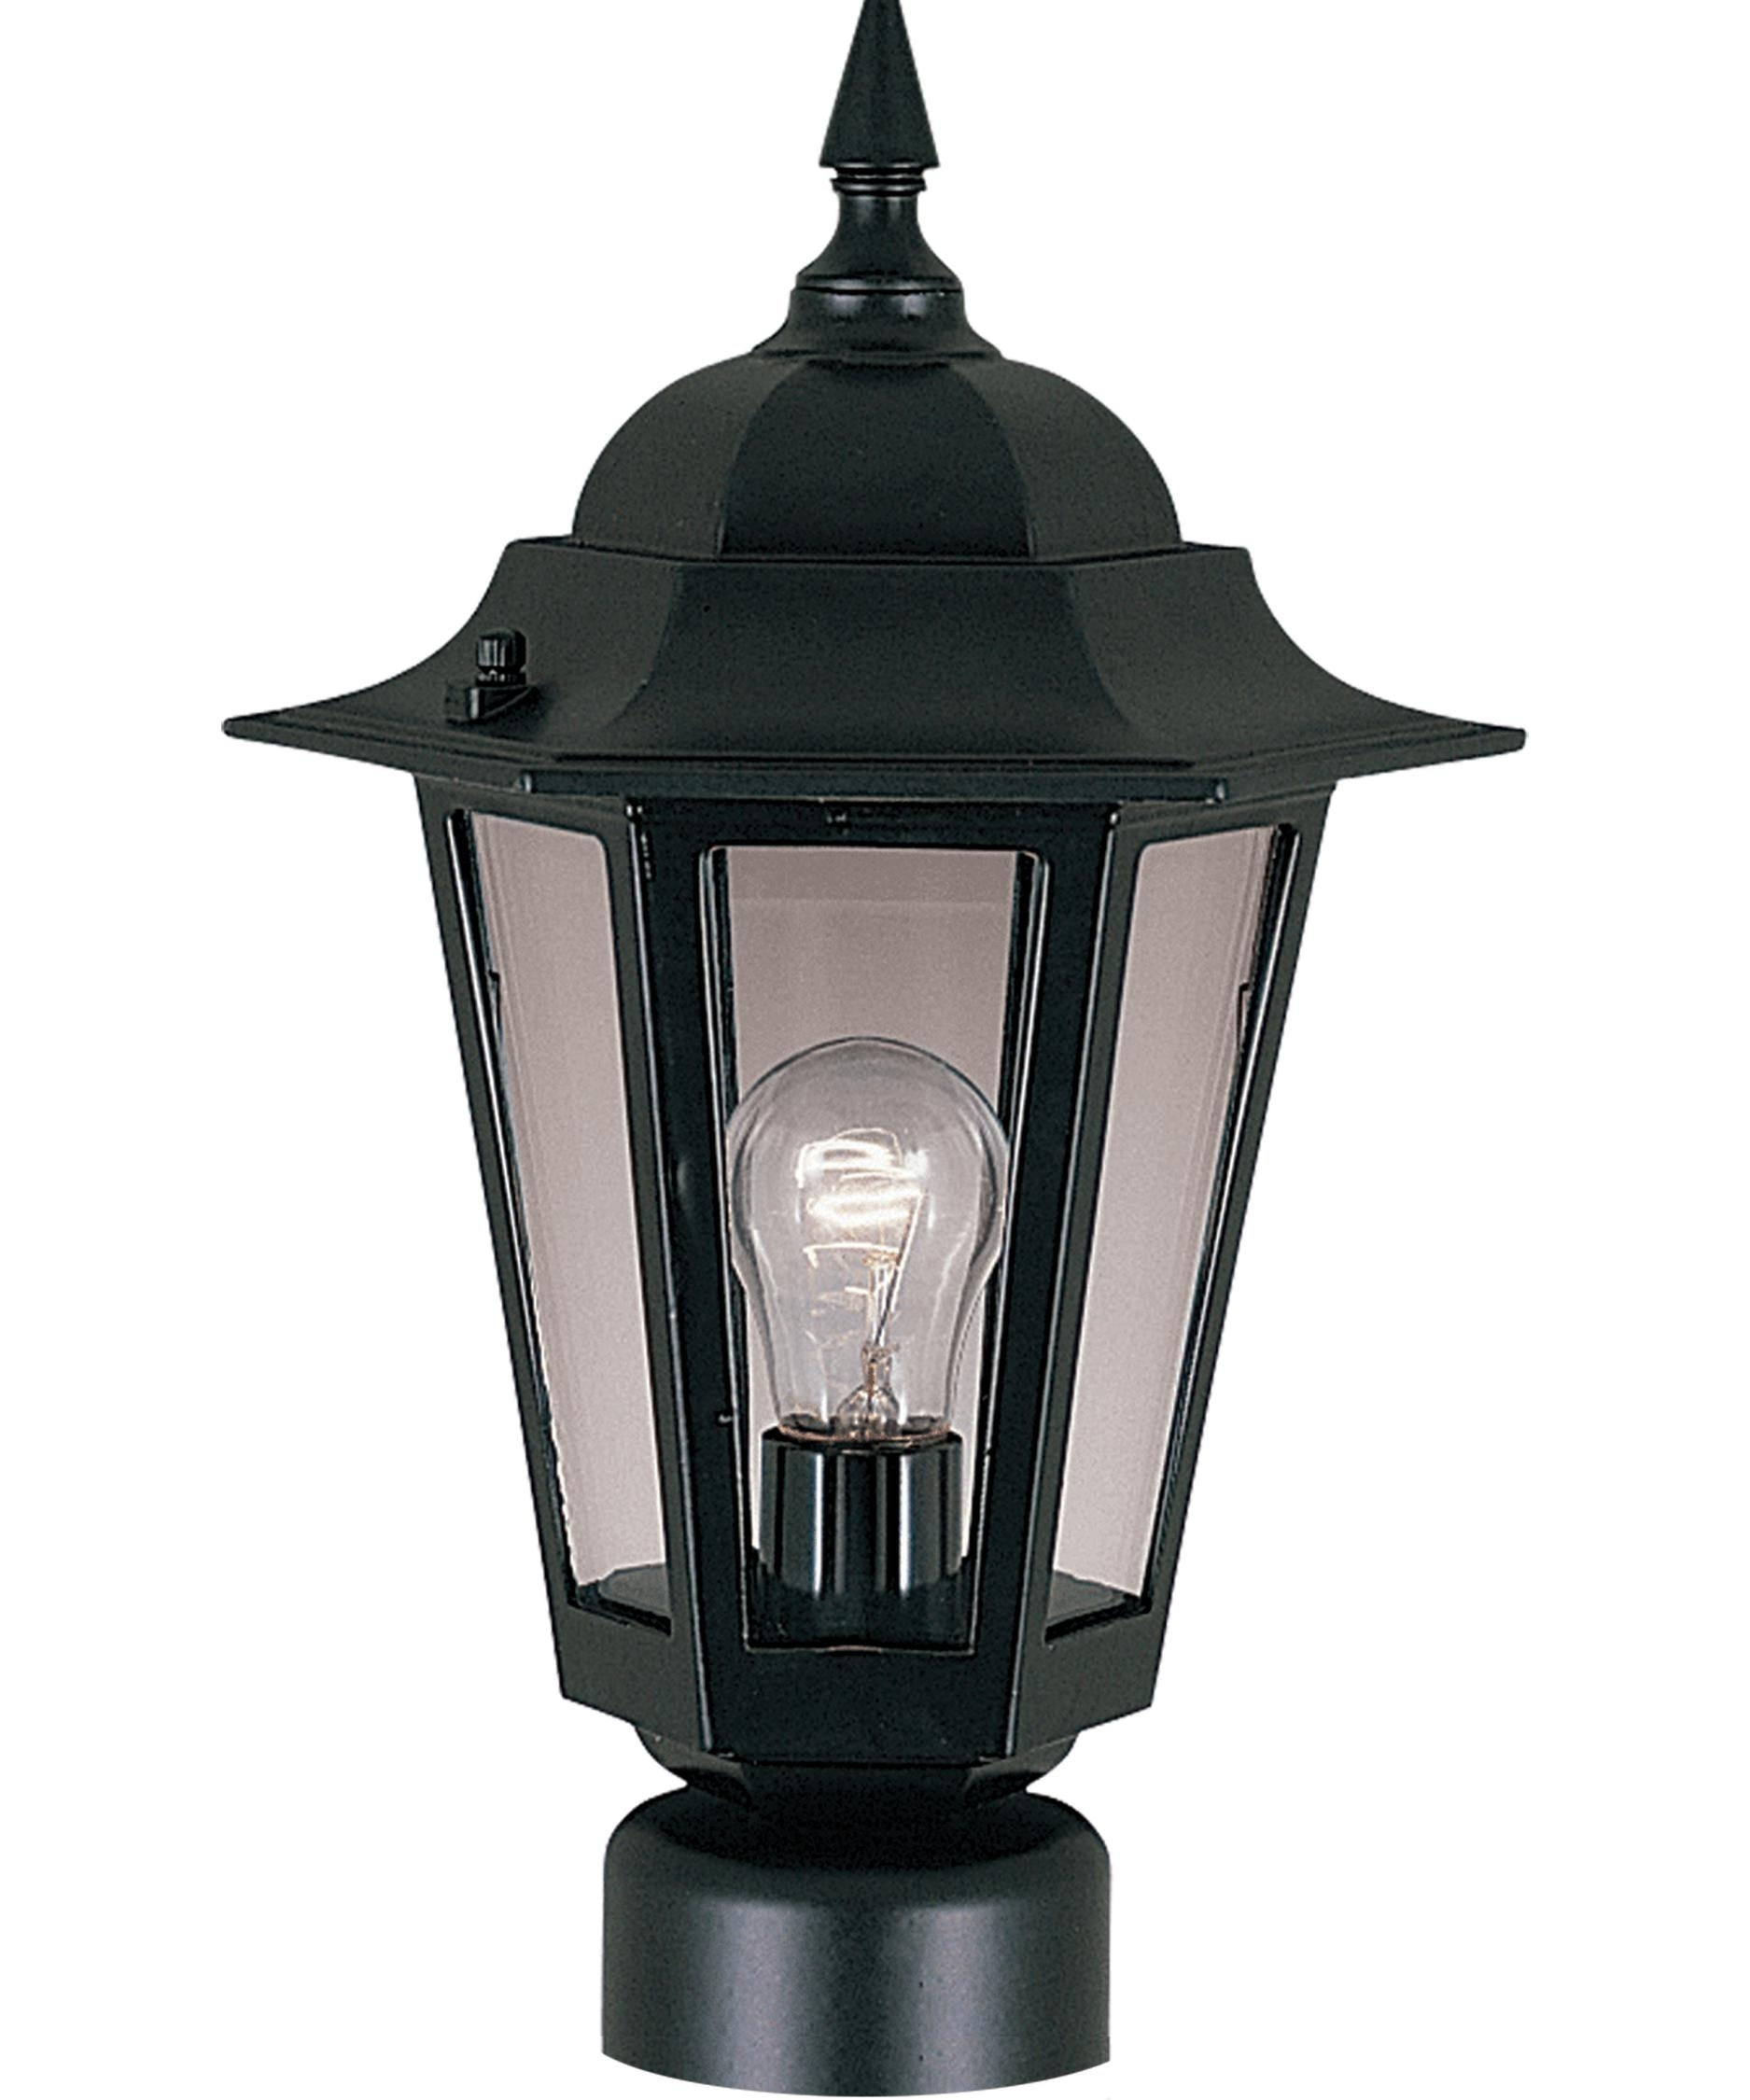 Outdoor Post Lamps & Post Lighting: Led, Incandescent | Capitol Pertaining To Outdoor Mexican Lanterns (View 17 of 20)